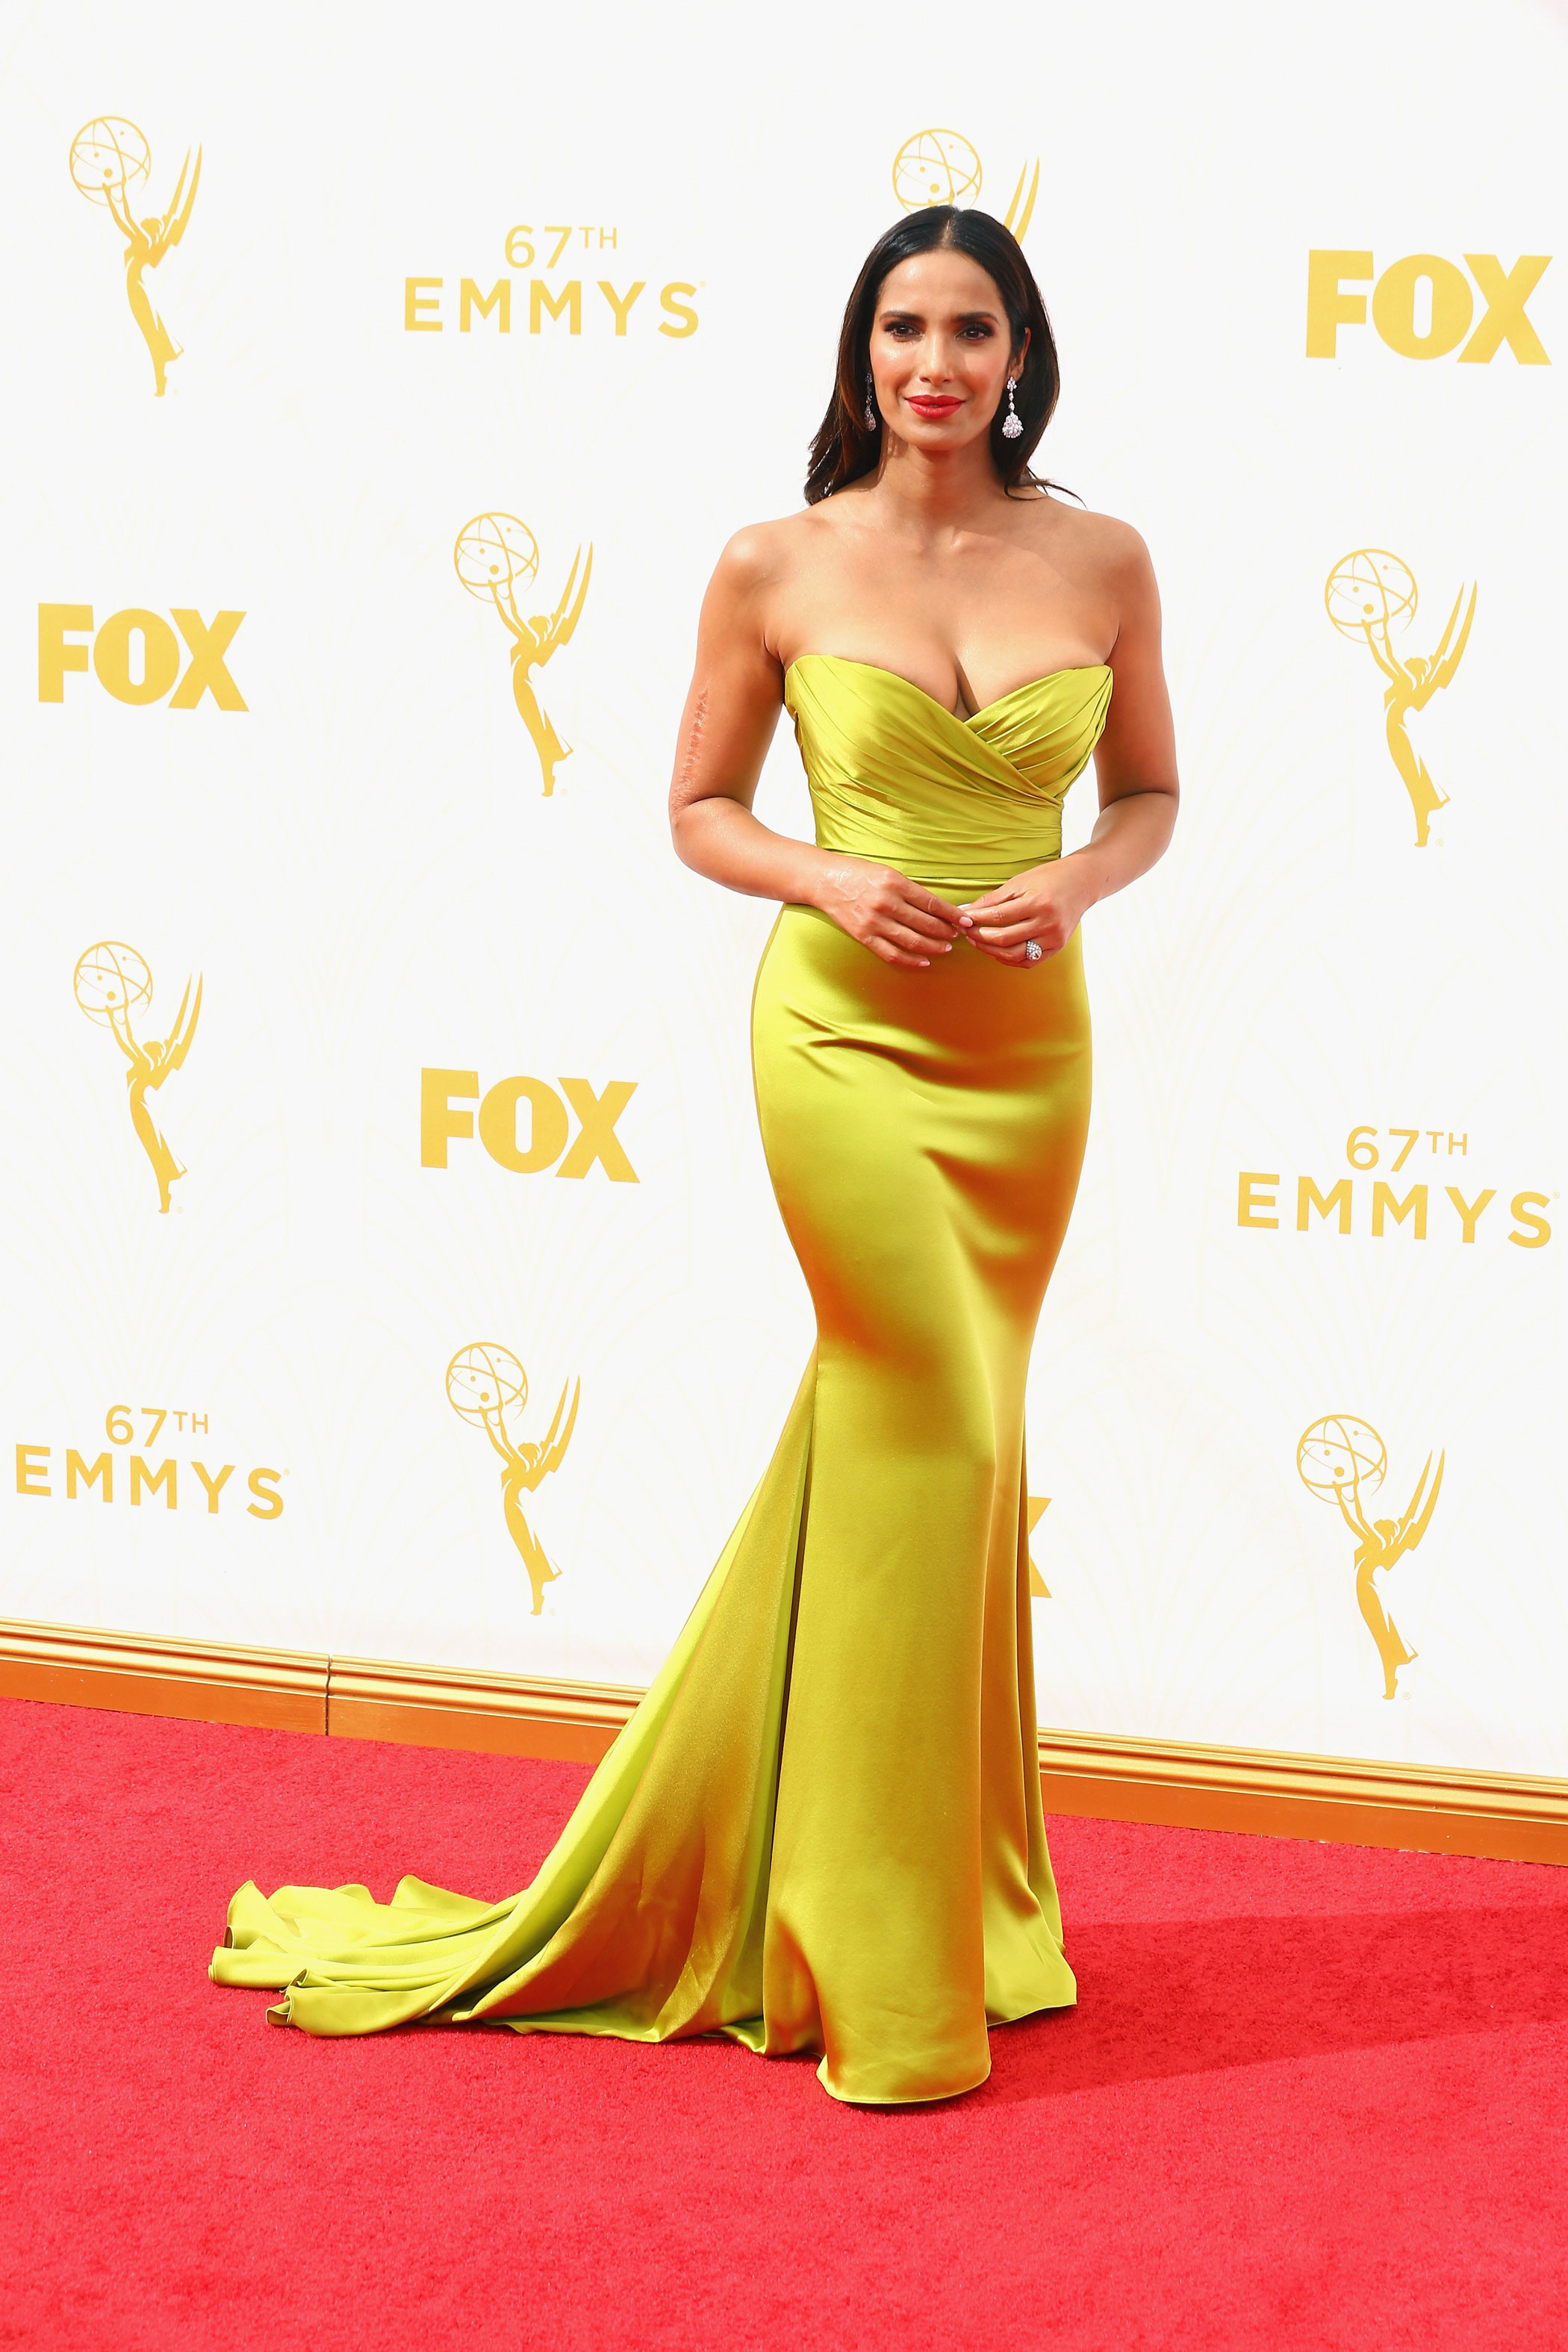 Padma Lakshmi at the 67th Emmy Award on Sept. 20, 2015 in Los Angeles.